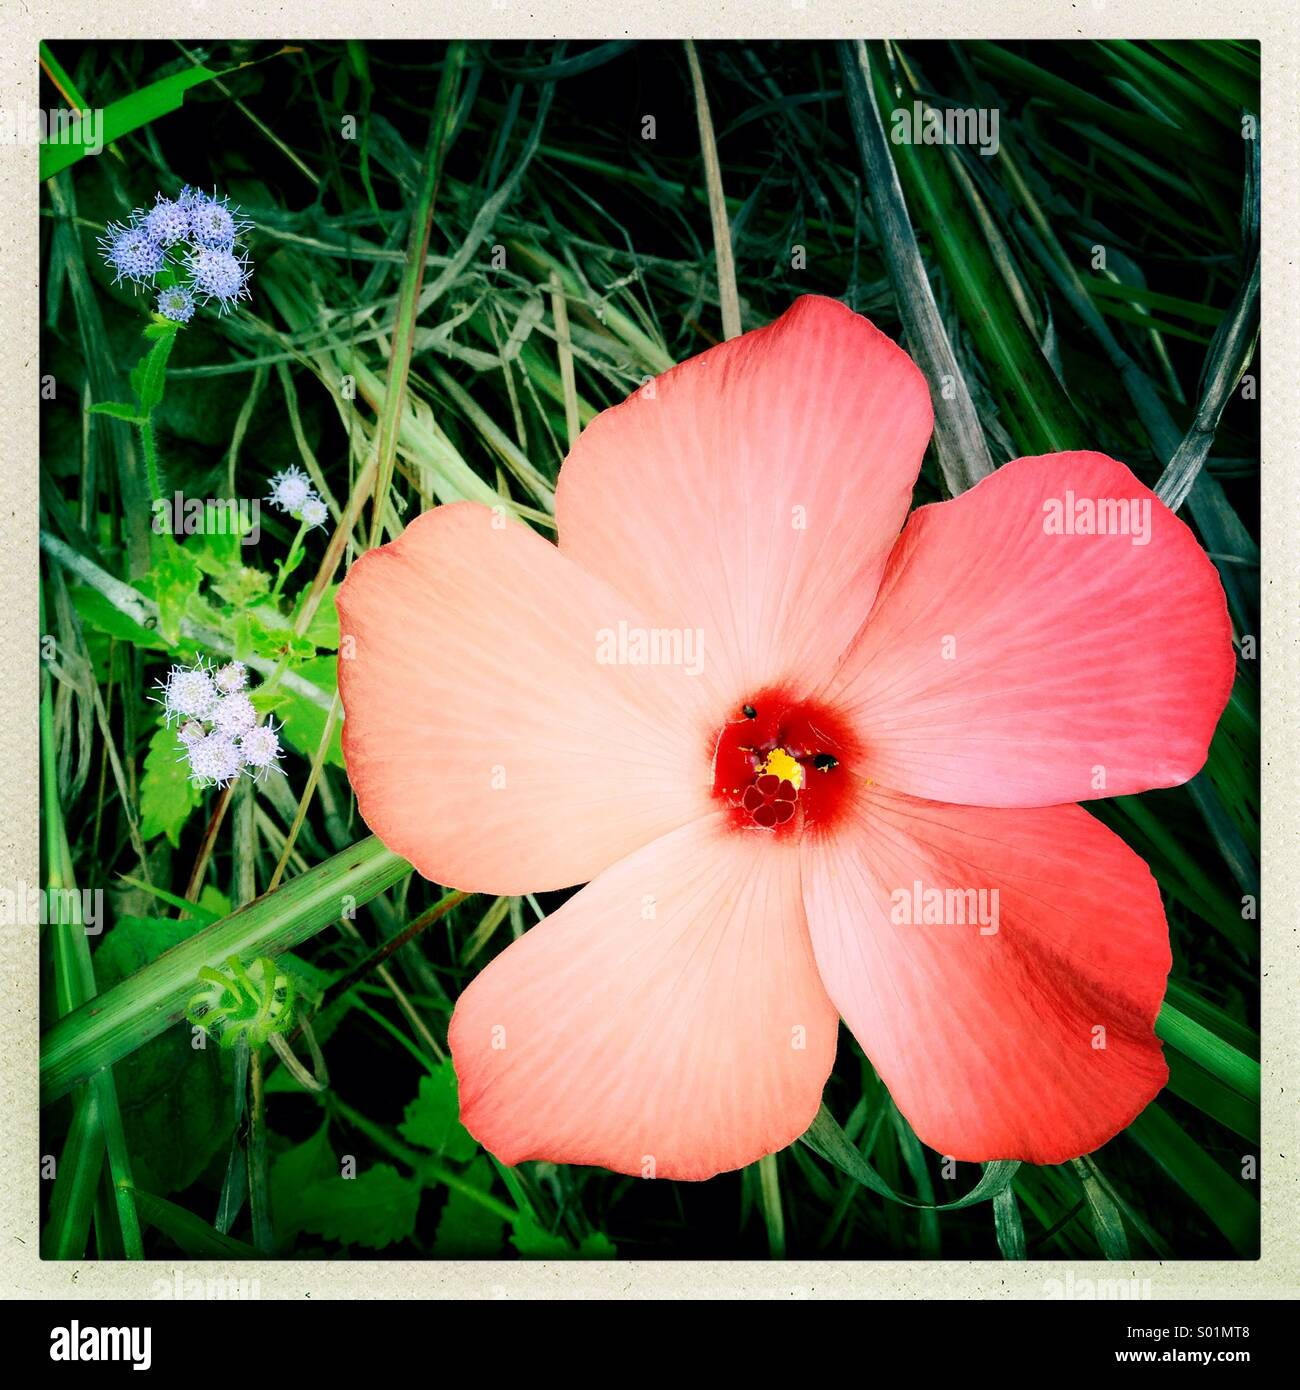 Bush-Land-Blume Stockbild